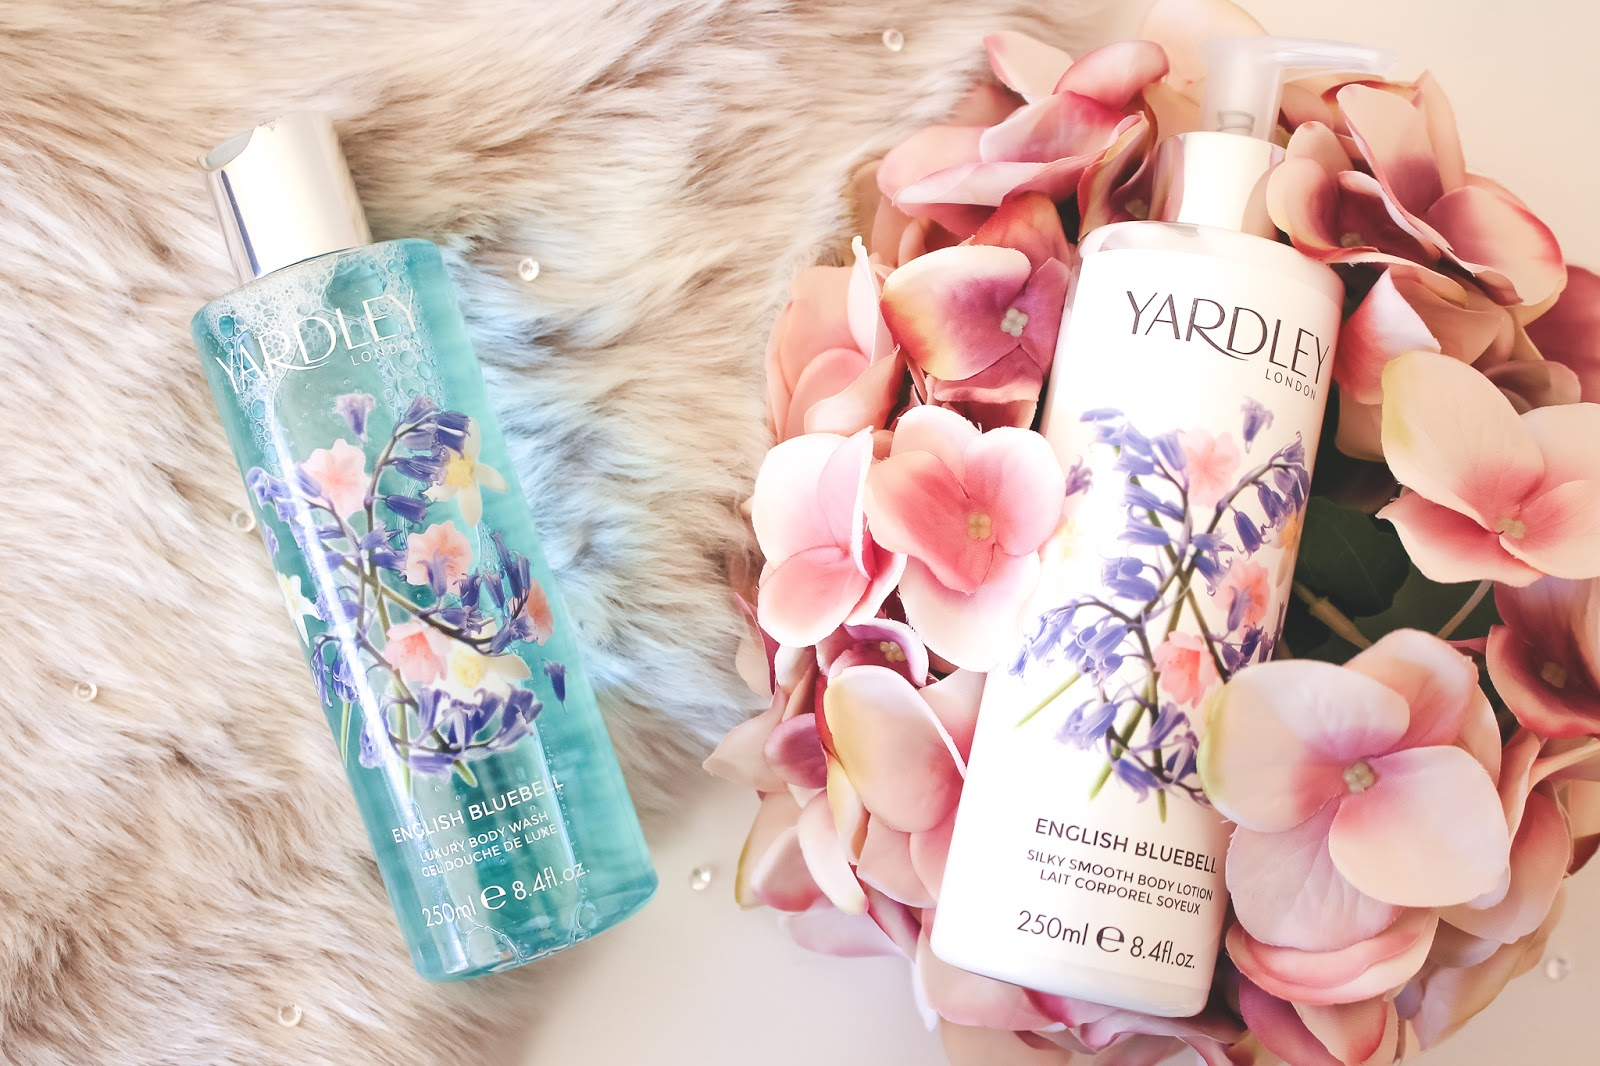 Yardley London Lily Of The Valley And English Bluebell - 4